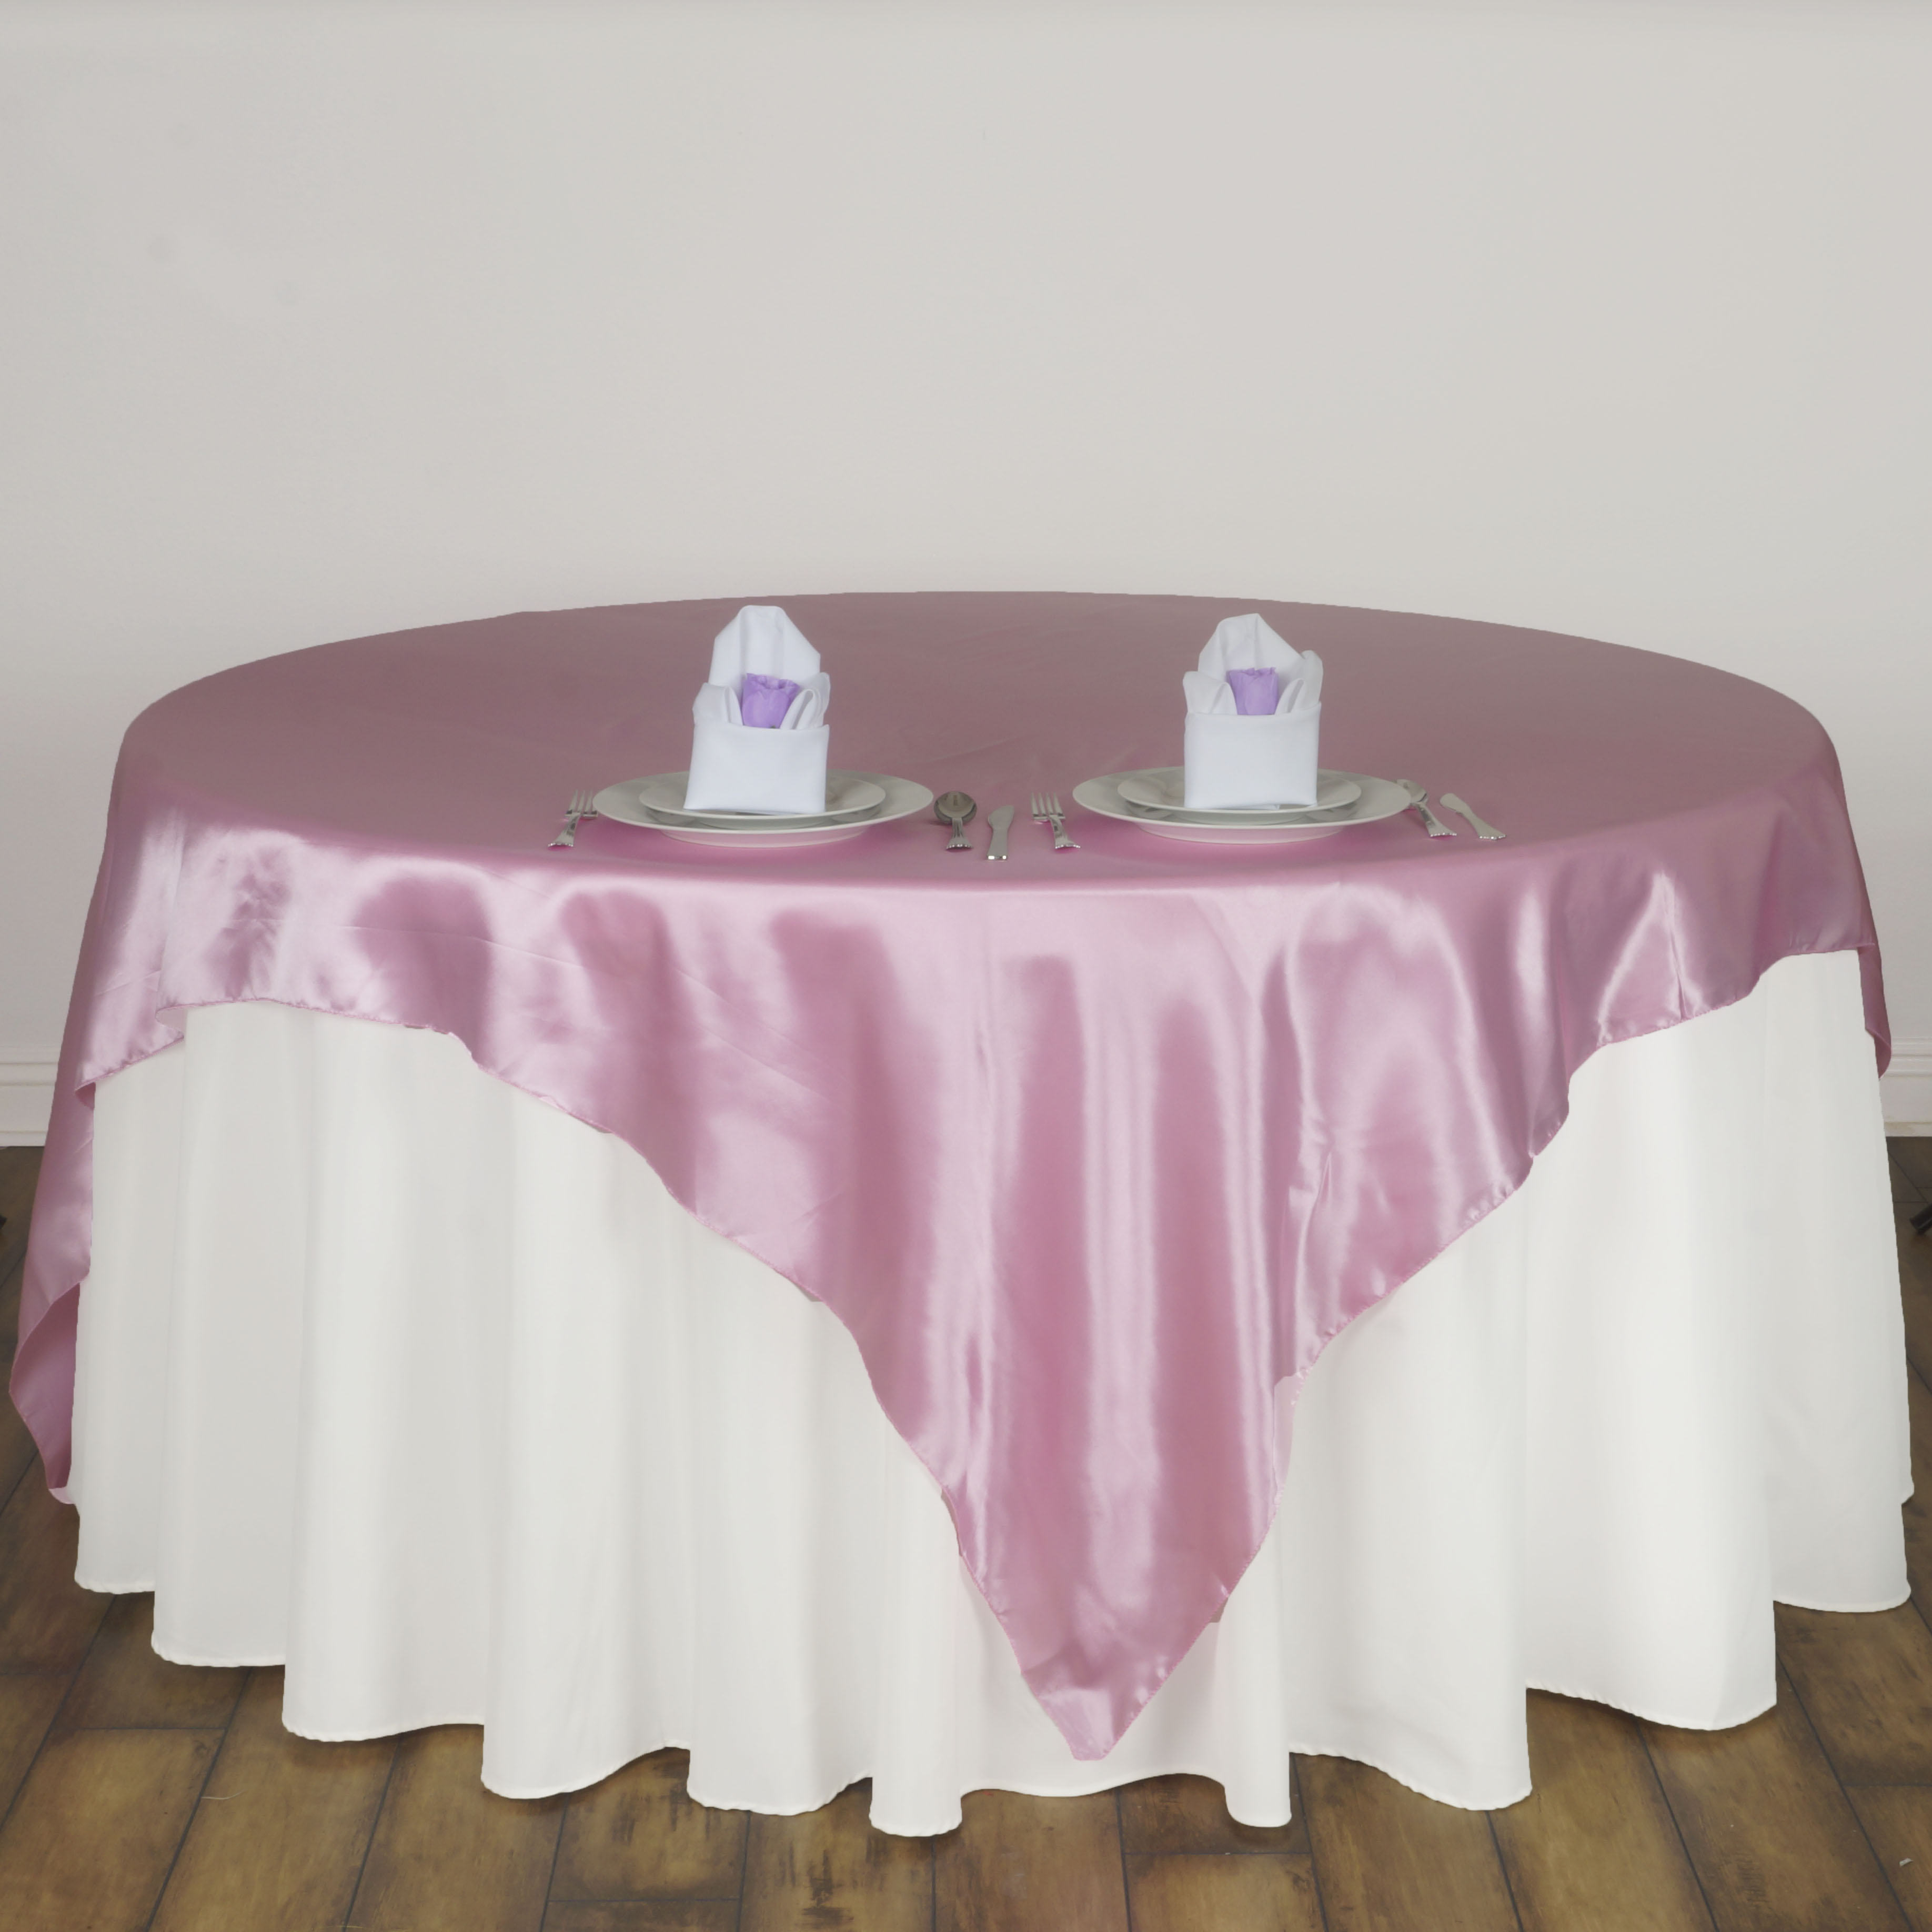 15 Pcs 72x72 Square SATIN Table Overlays Wedding Linens For Reception W